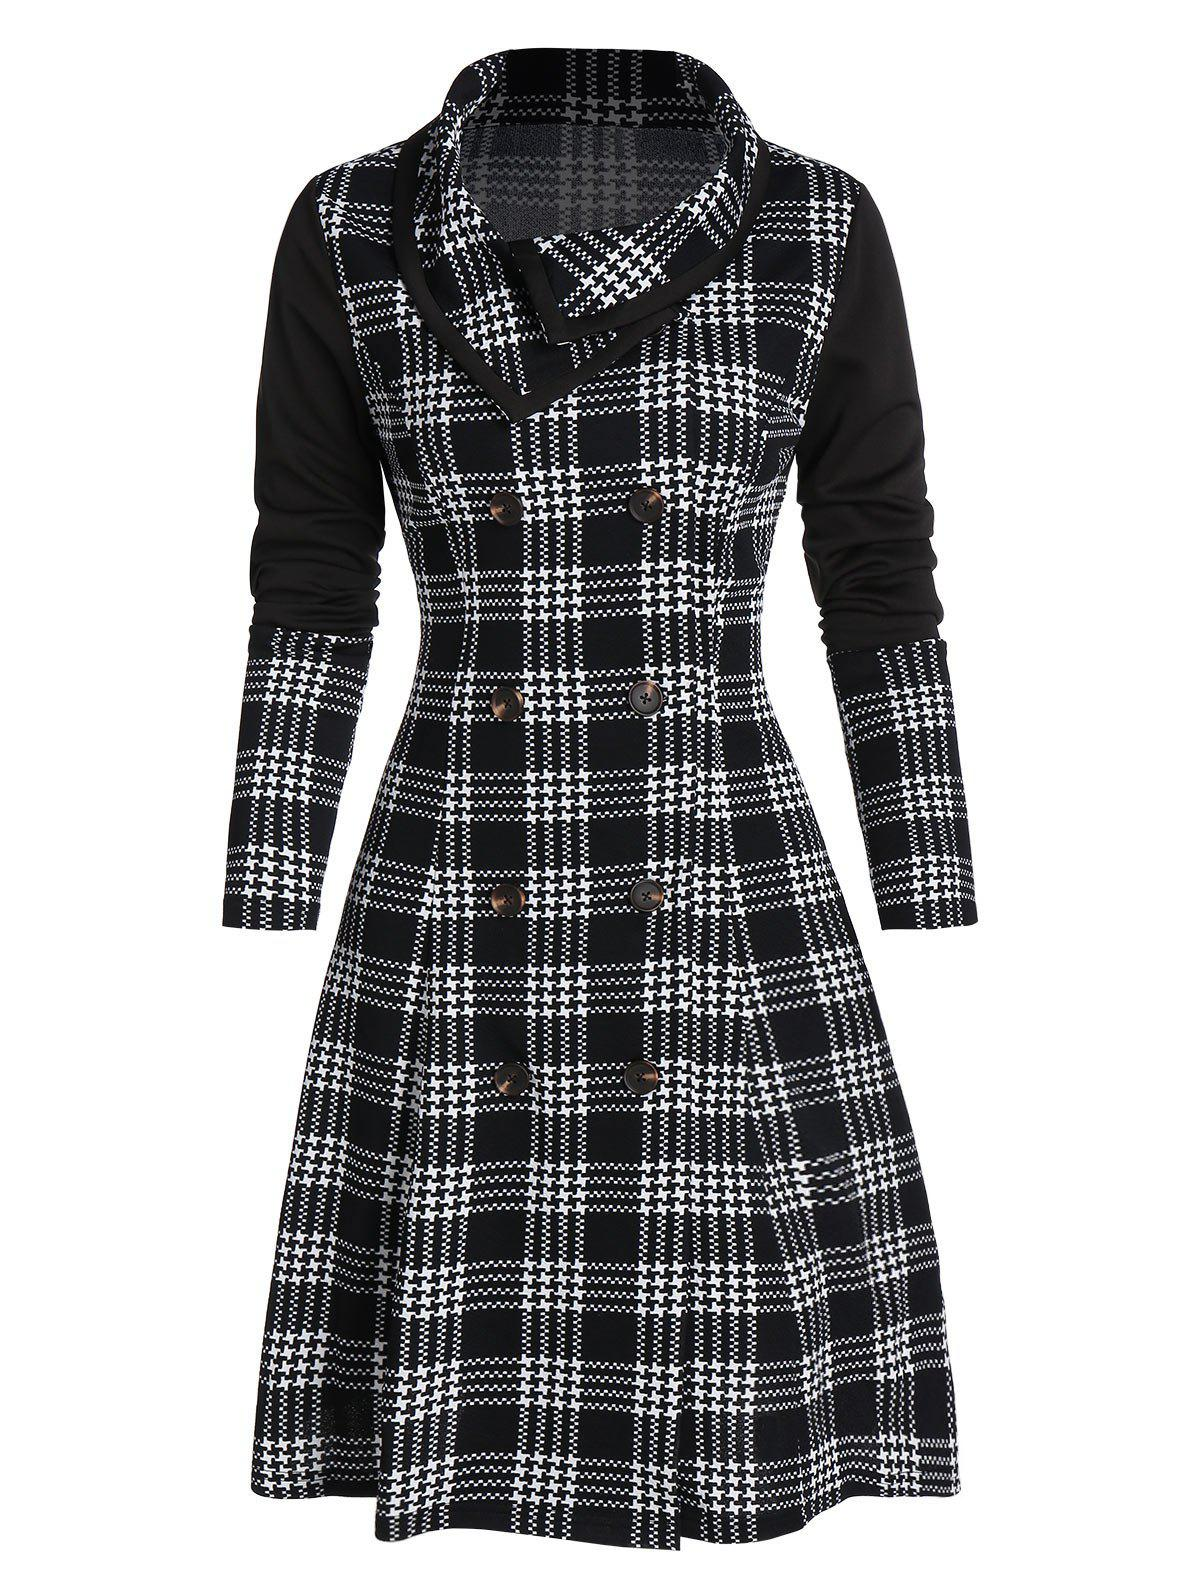 Houndstooth Plaid Print Double Breasted Skirted Coat - BLACK 2XL